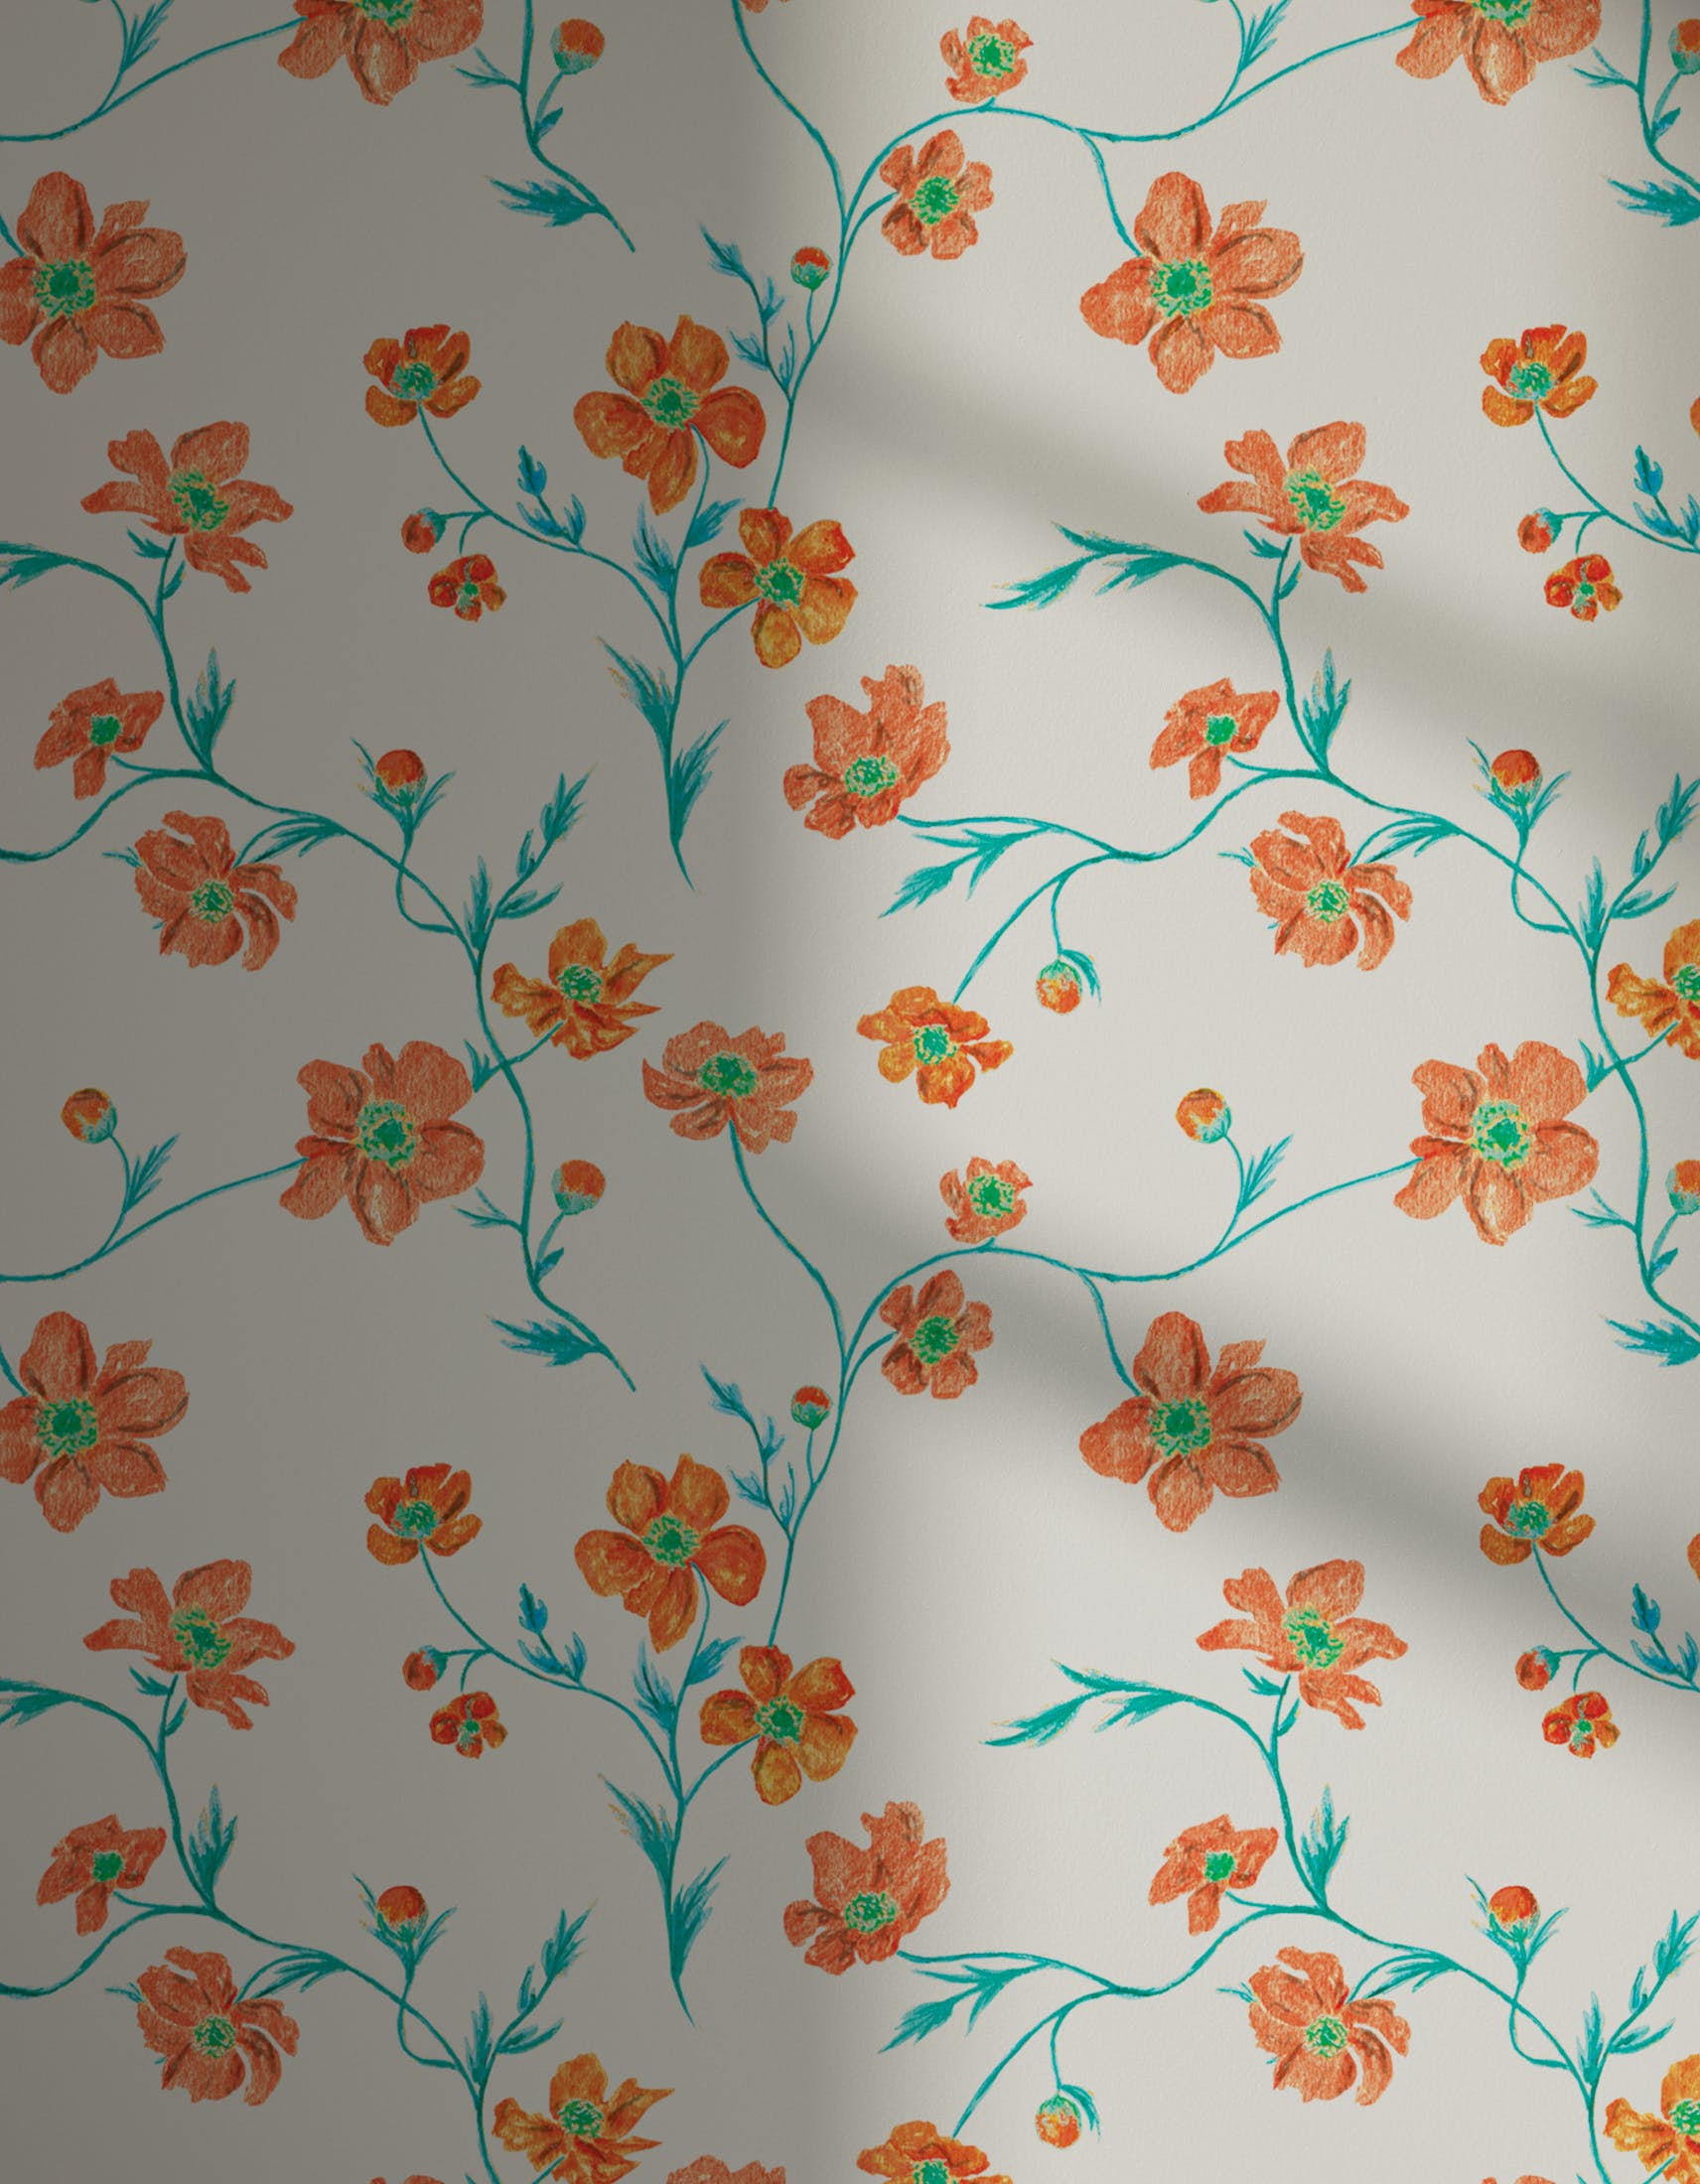 Lick x Jenna Hewitt Anemone 02 orange floral wallpaper with shadow